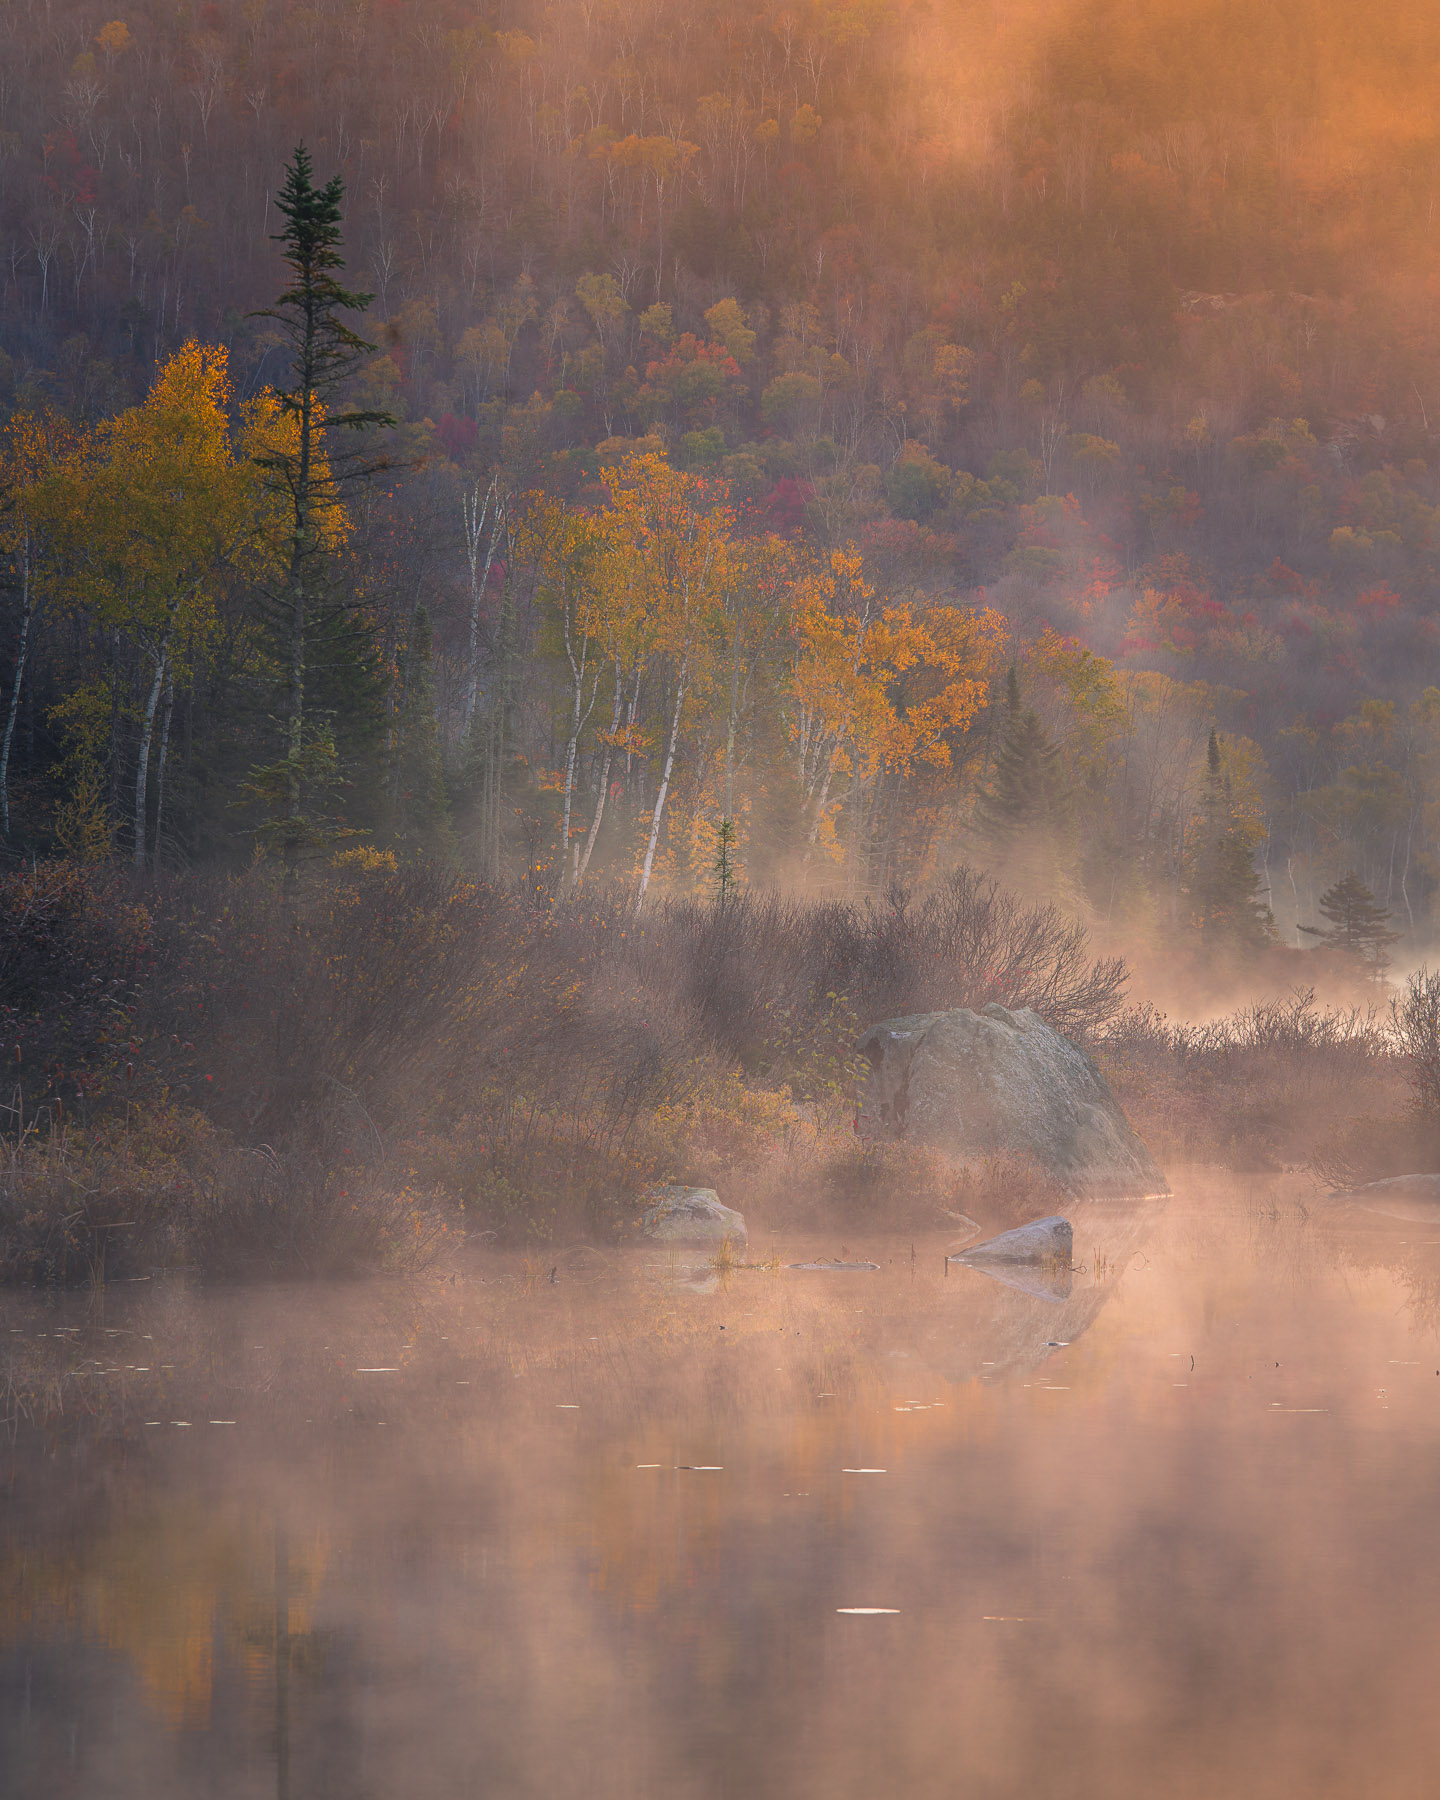 Autumn color and morning fog on Turtlehead Pond Pond, Vermont.